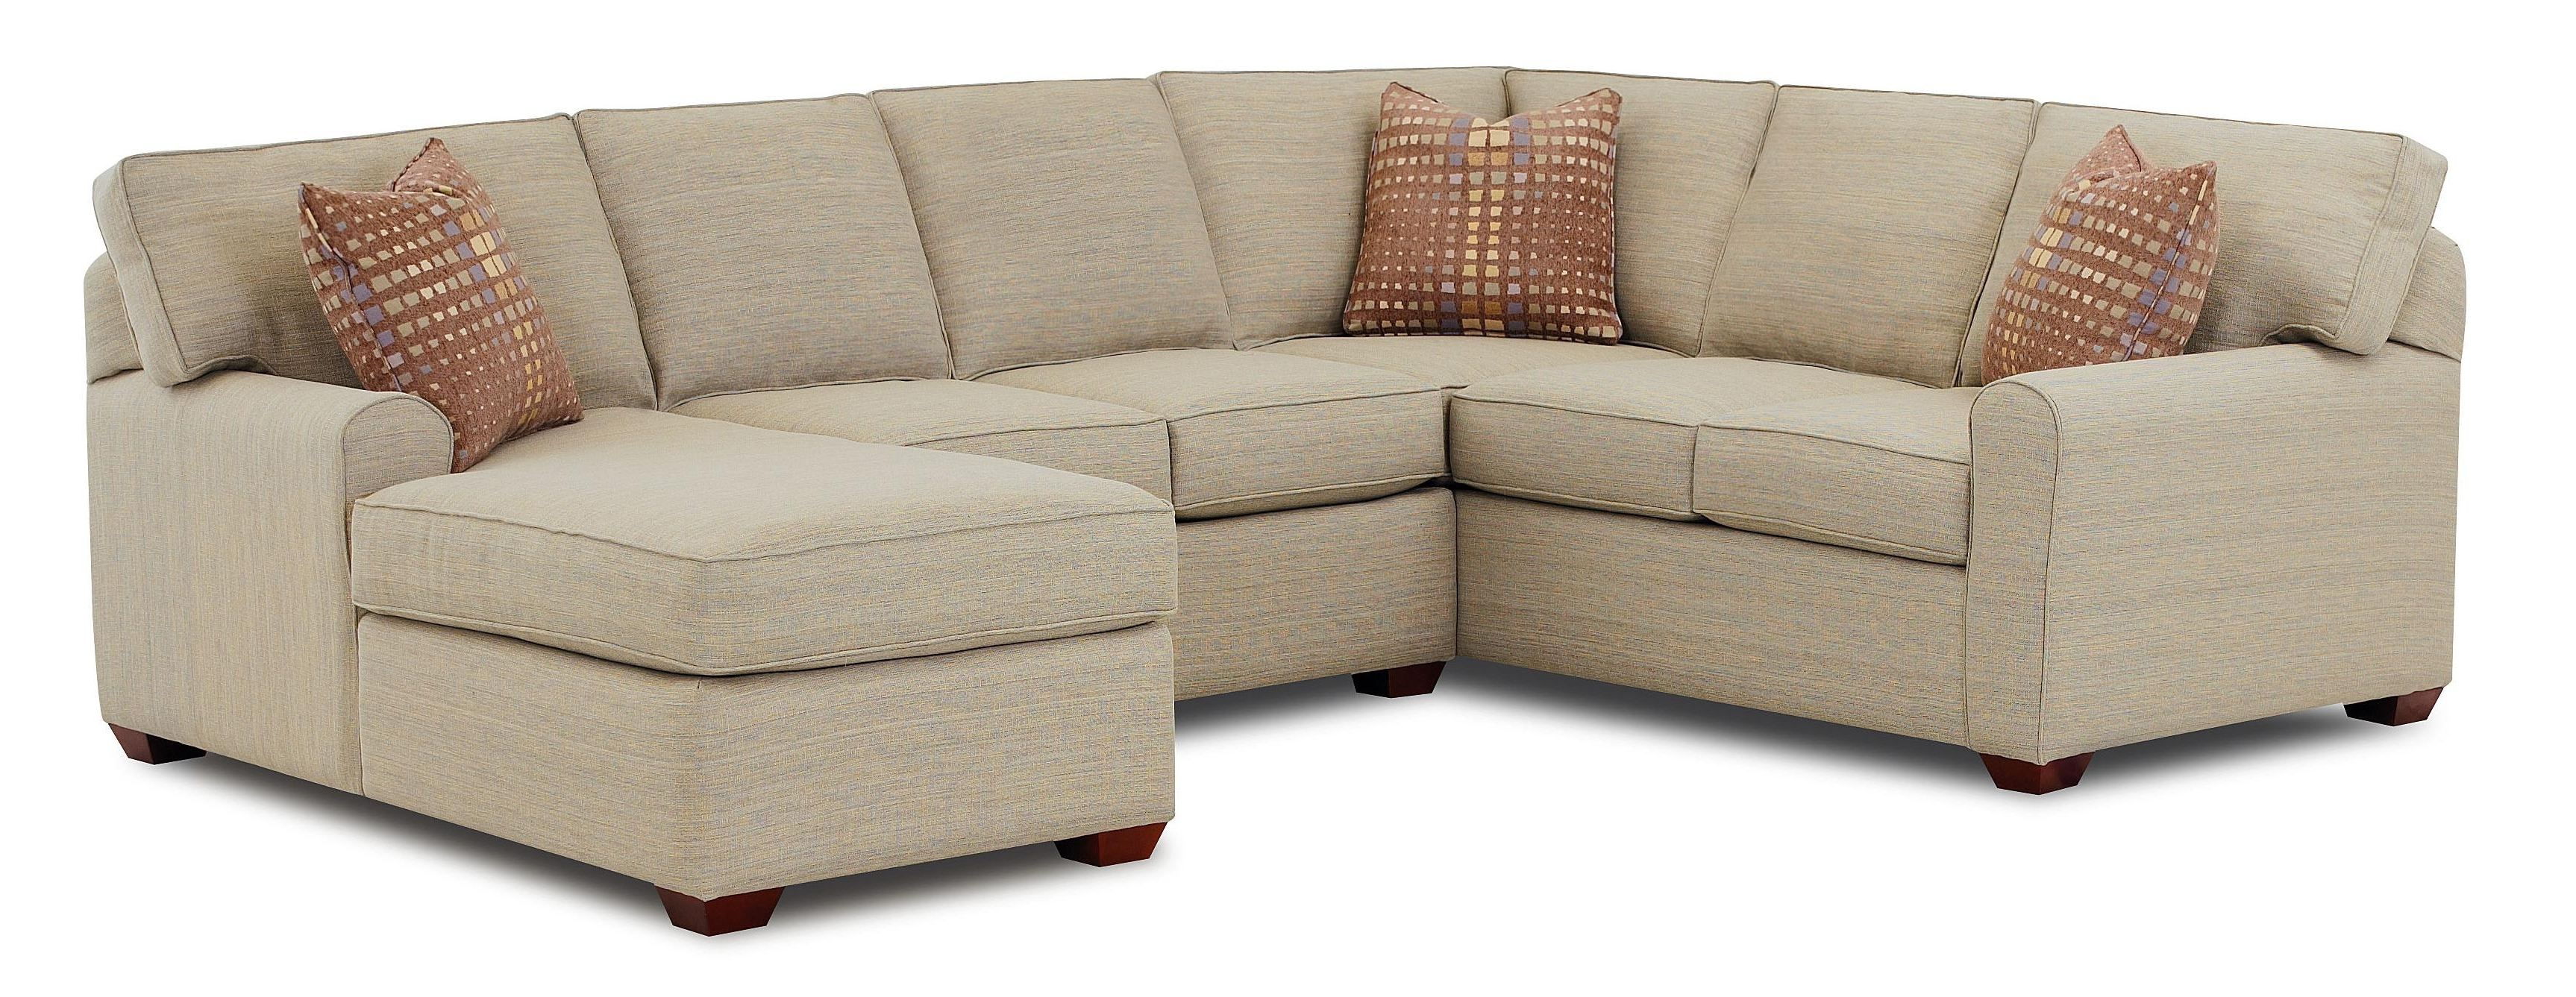 Lovely Chaise Lounge Couch 58 For Your Modern Sofa Inspiration Regarding Best And Newest Couch Chaise Lounges (View 10 of 15)